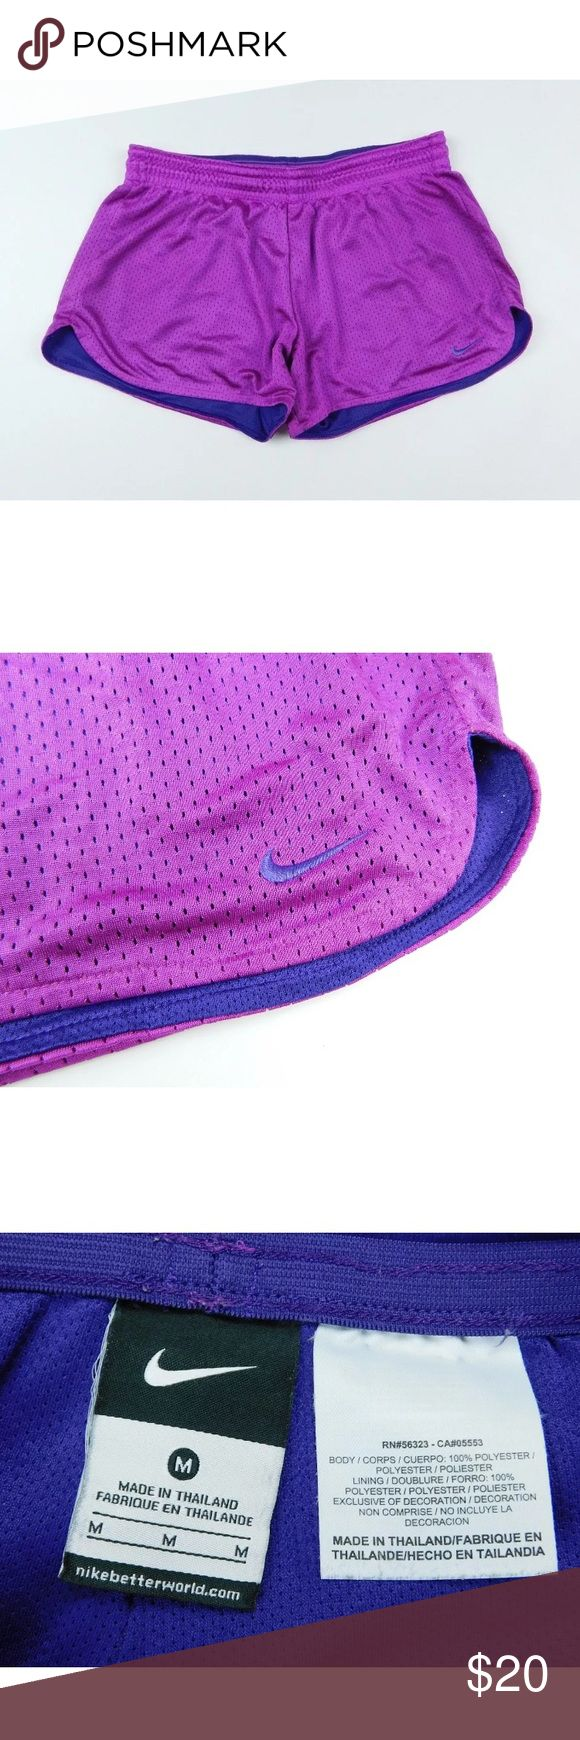 """🌼Nike🌼 Purple Running Shorts Breathable Pants M Gently used clothing. No flaws. WAIST 14"""" perfect for going for a run or walk or hitting the gym. Feel free to make an offer or bundle and save! Nike Shorts"""